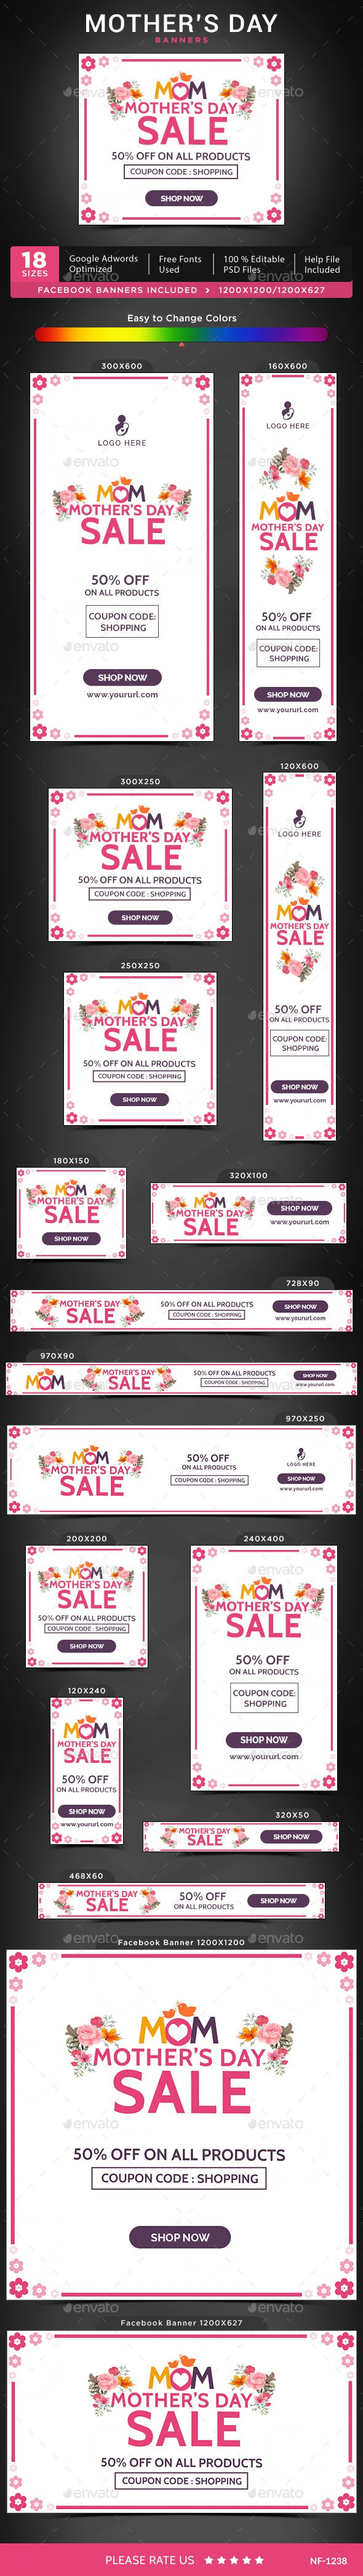 Mothers Day Banners Template PSD. Download here: http://graphicriver.net/item/mothers-day-banners/15713127?ref=ksioks